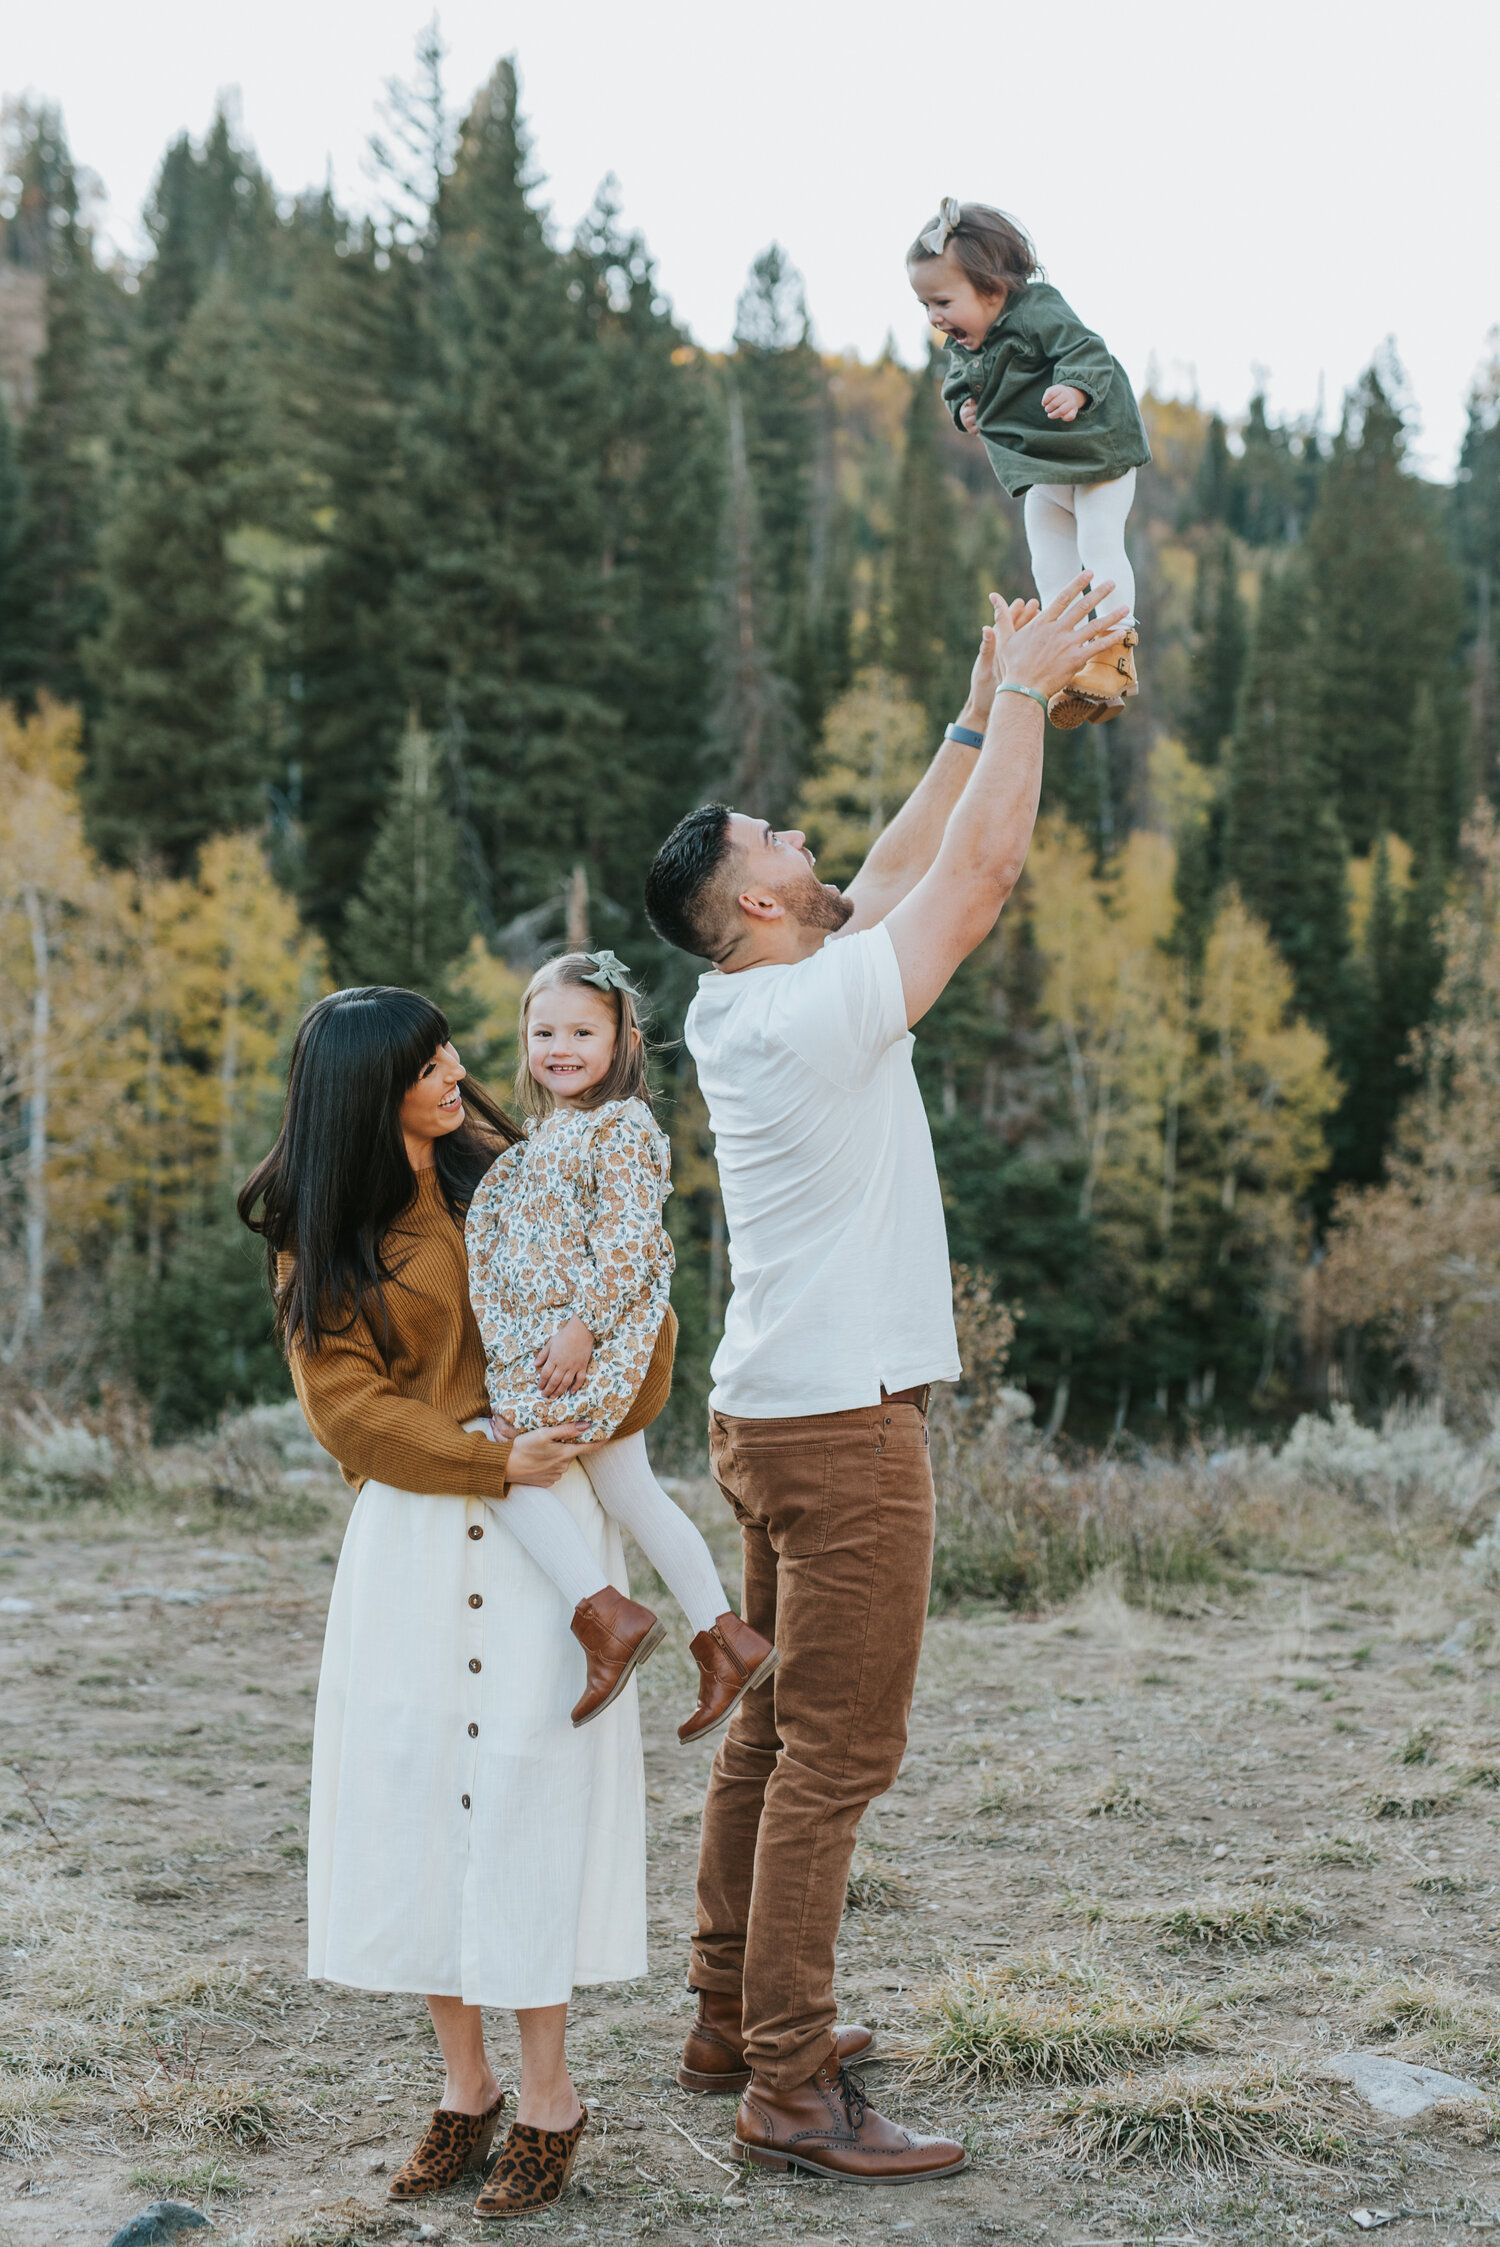 Butterfield Extended Family Portraits | Northern Utah Family Photographer — Kristi Alyse Photography